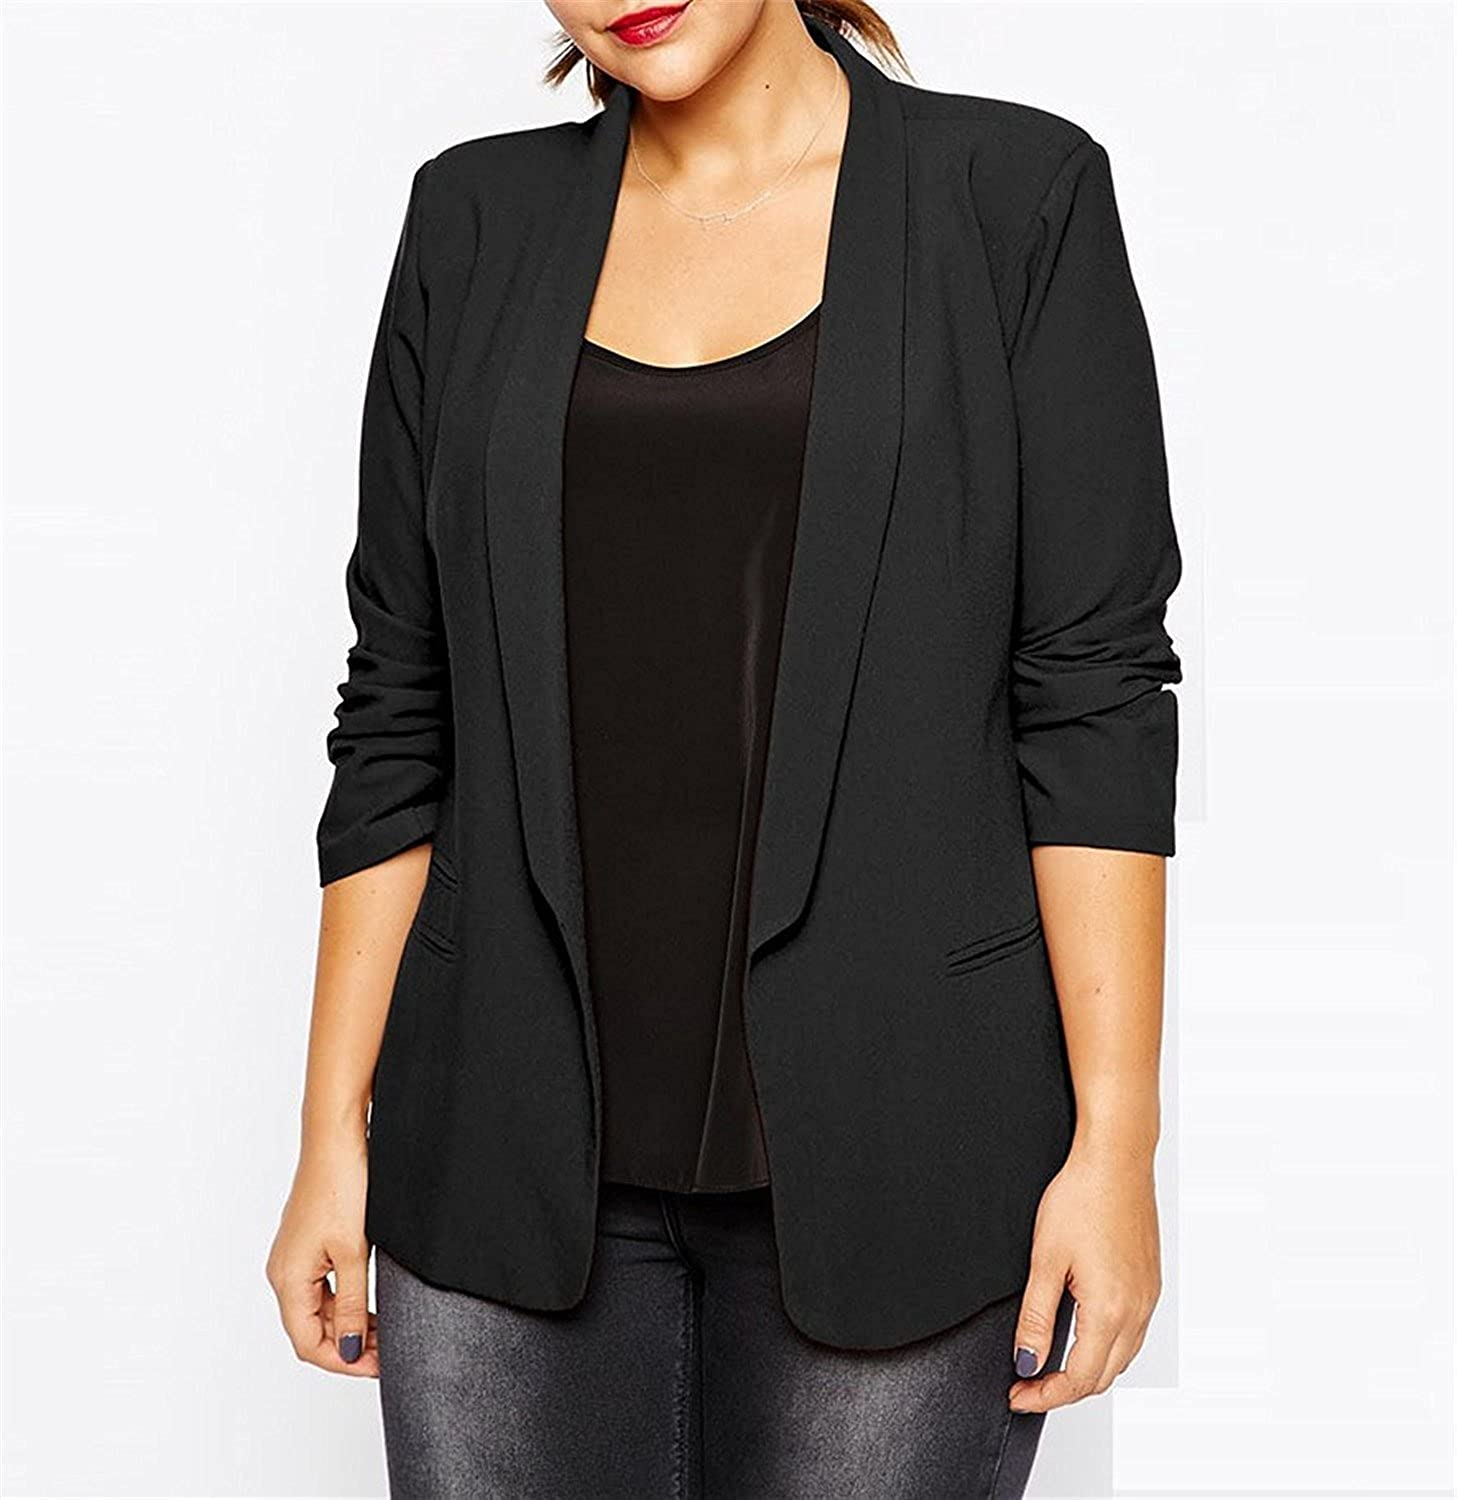 Sonder Blazer Women Plus Size Black Red Autumn and Jackets Coat Solid Casual Blazer Business Suits 5xl 6xl at Amazon Womens Clothing store: